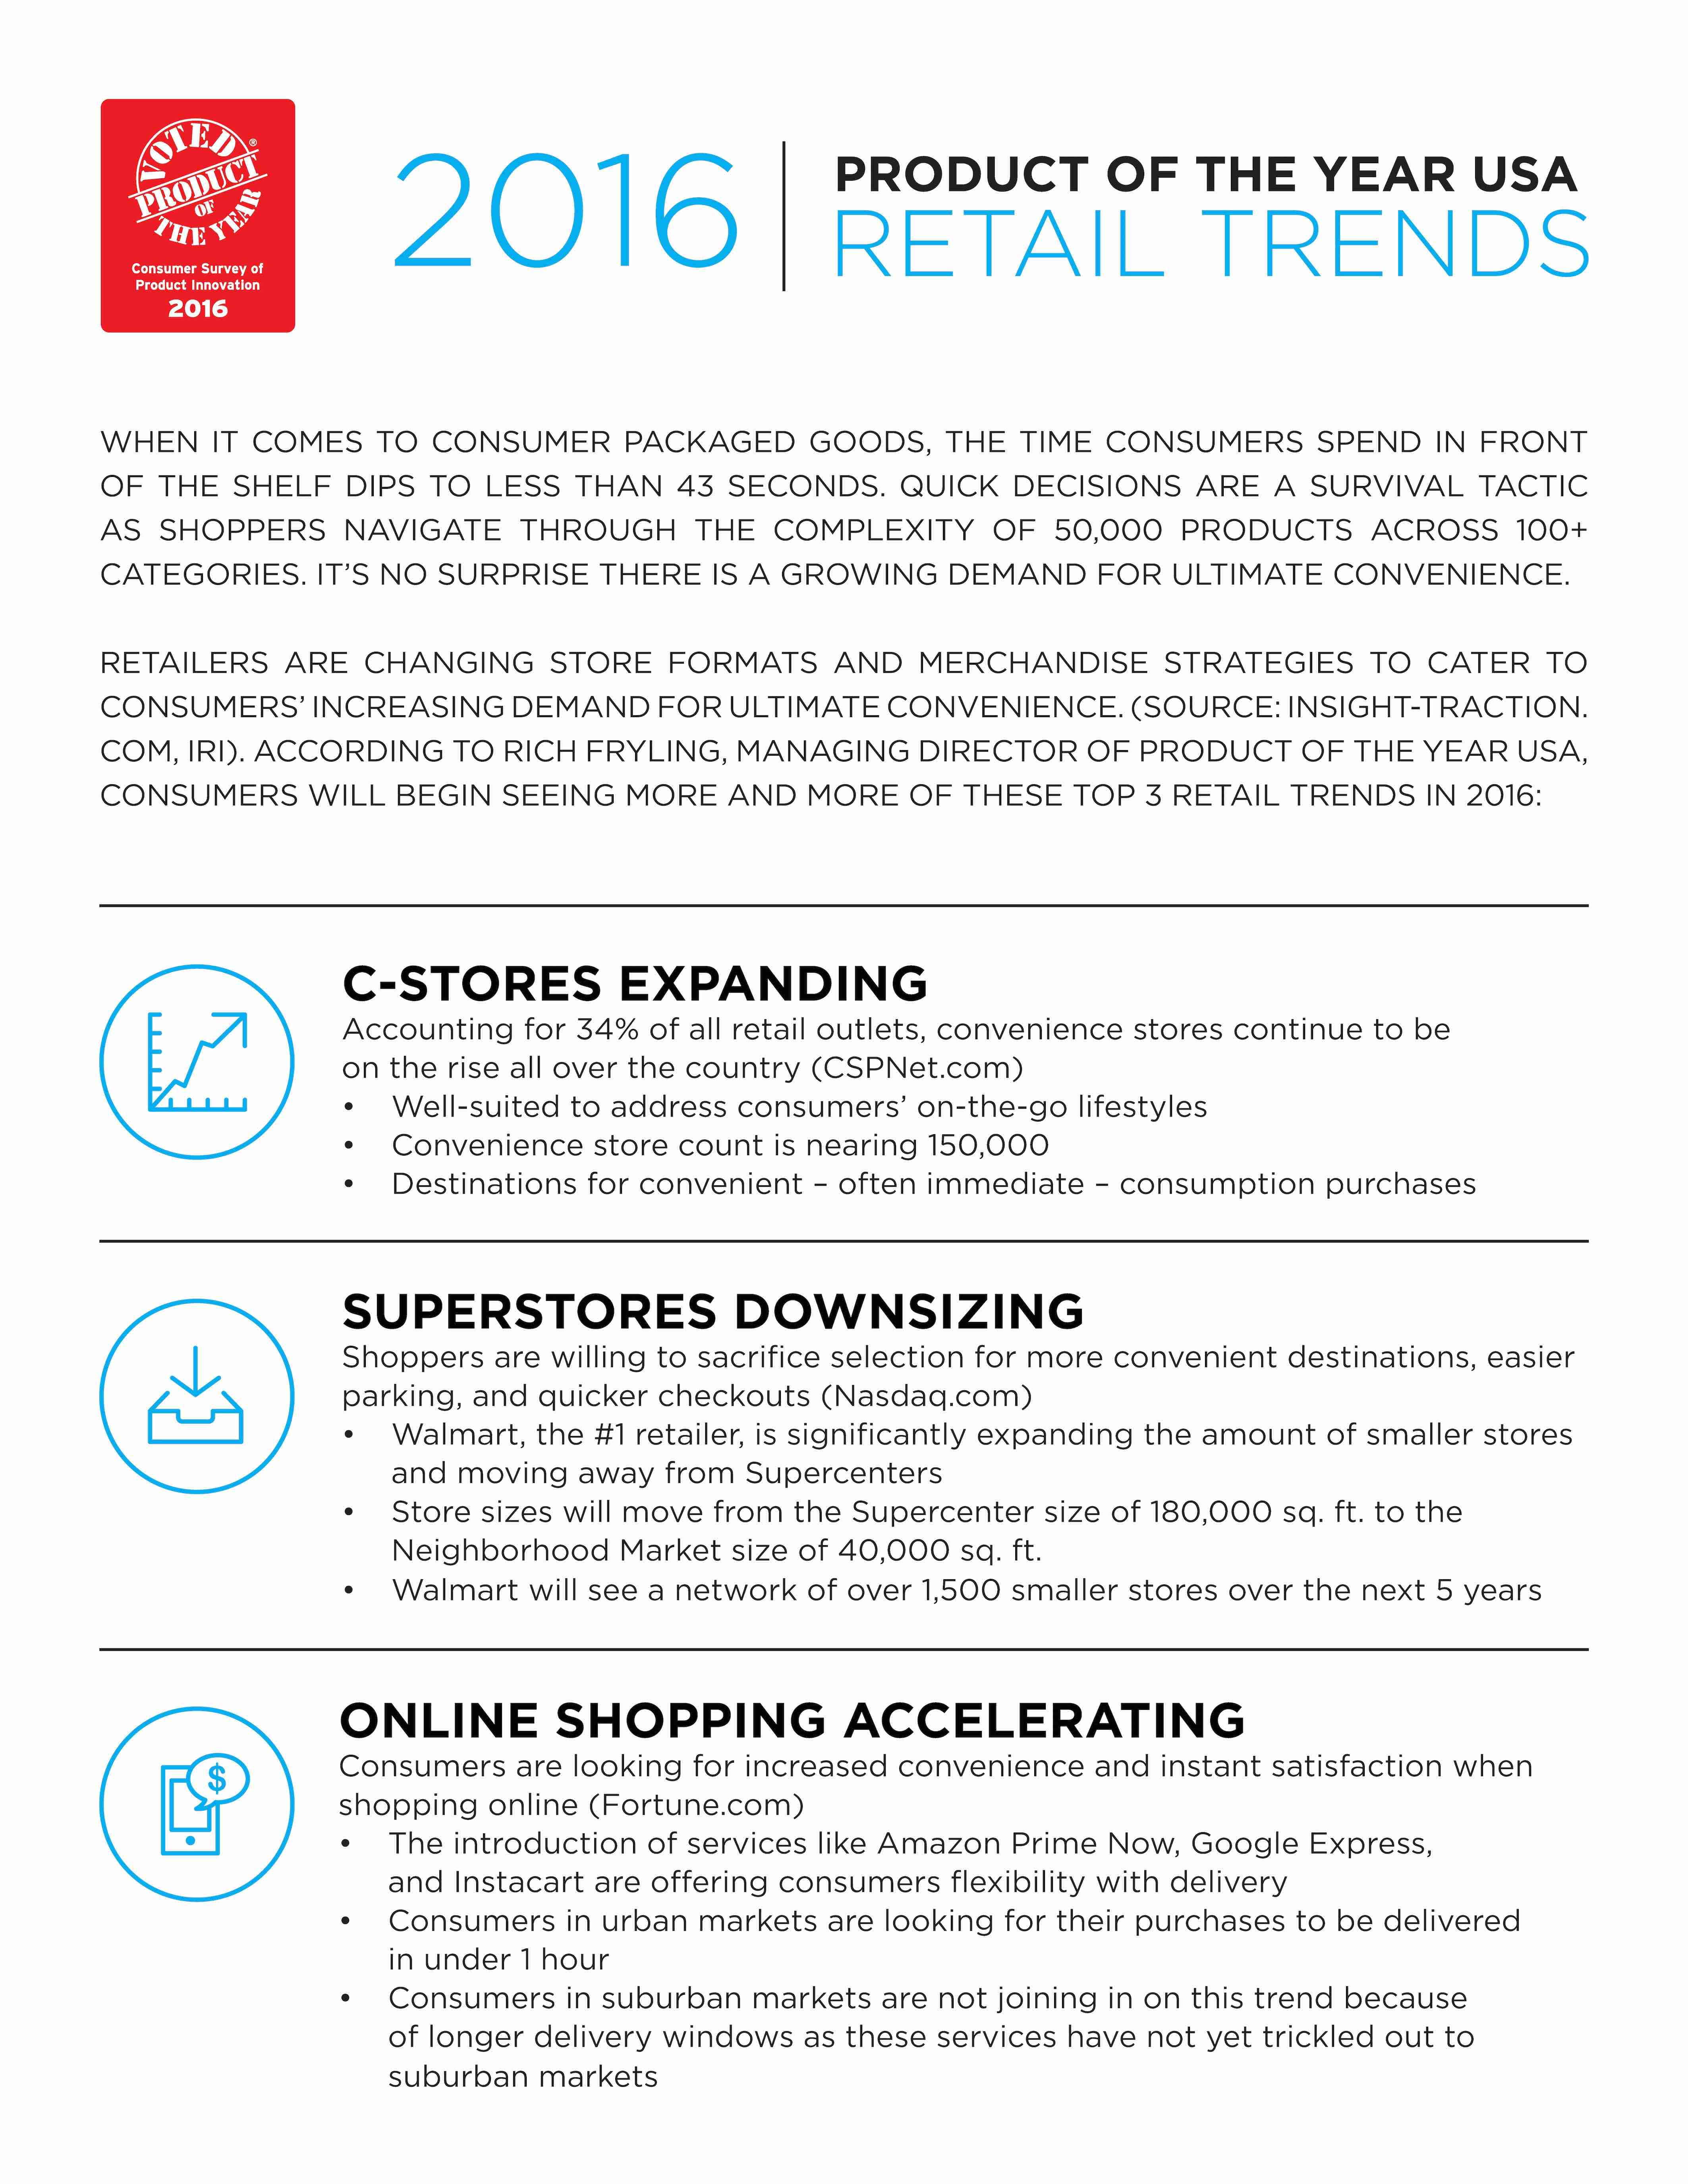 POY - 2016 Retail Trends